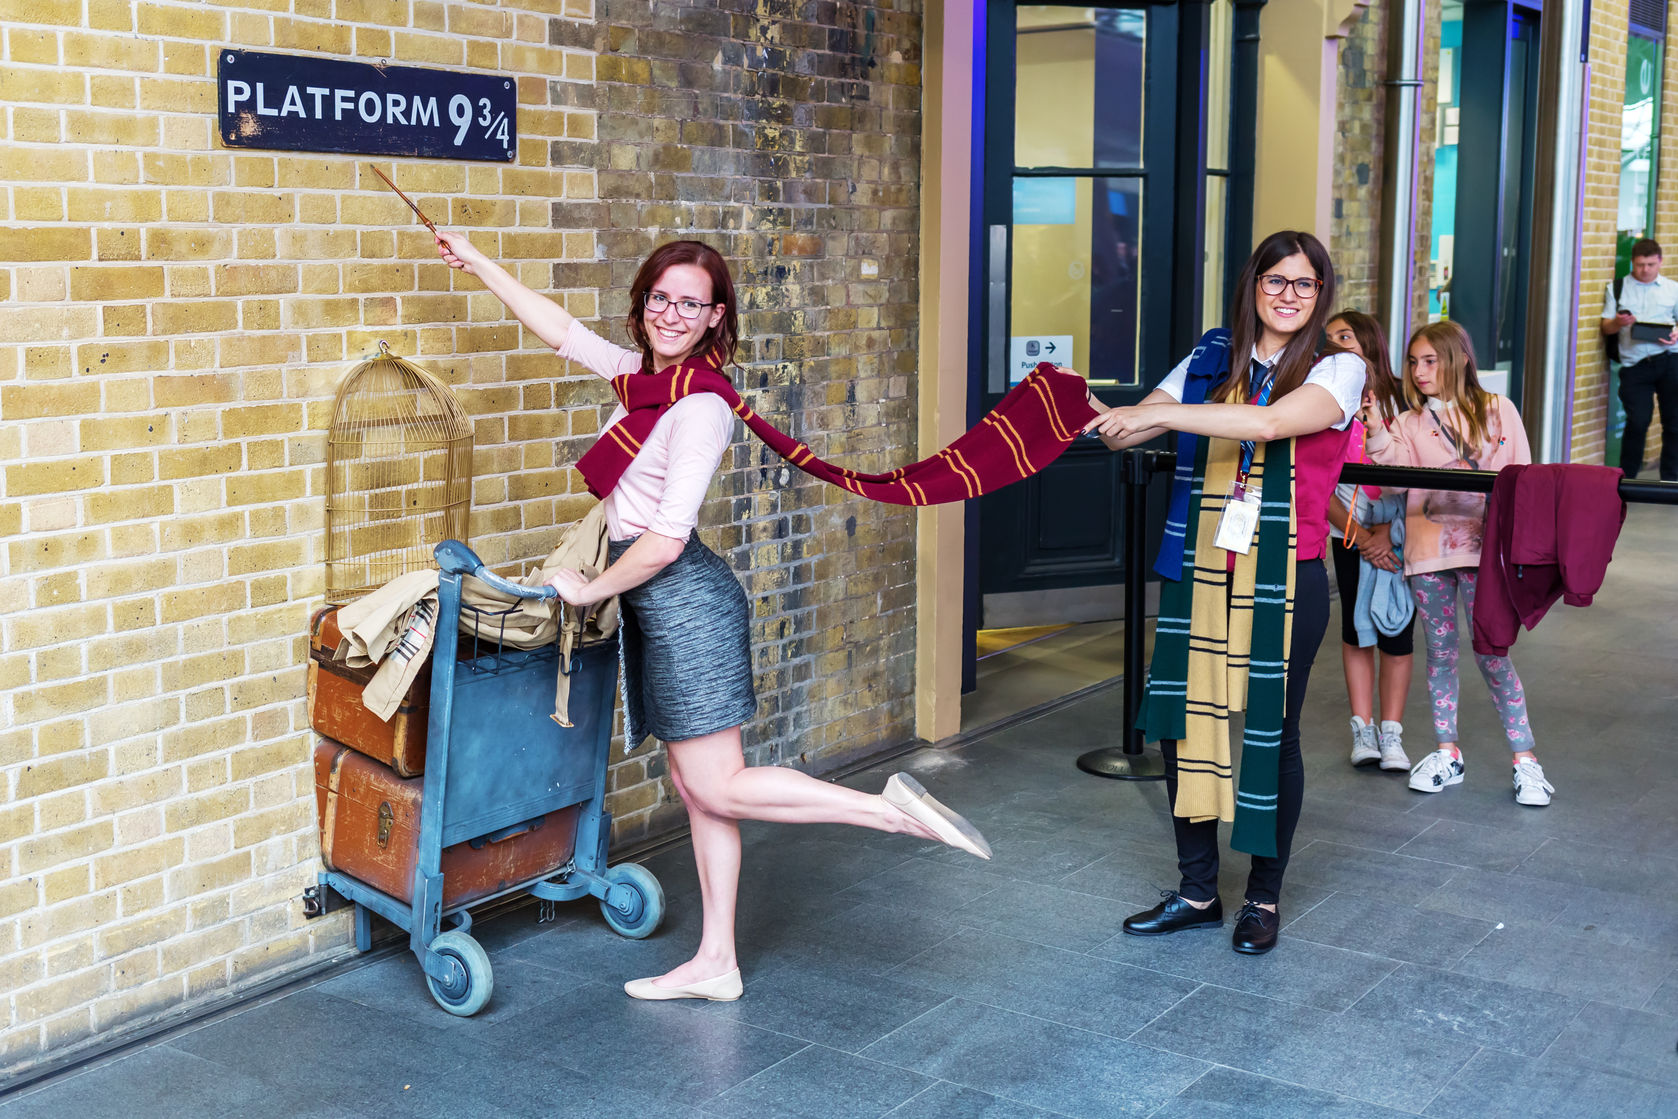 Potter fans pose at King's Cross Station's Platform 9 3/4. Photo copyright  madrabothair/123RF Stock Photos